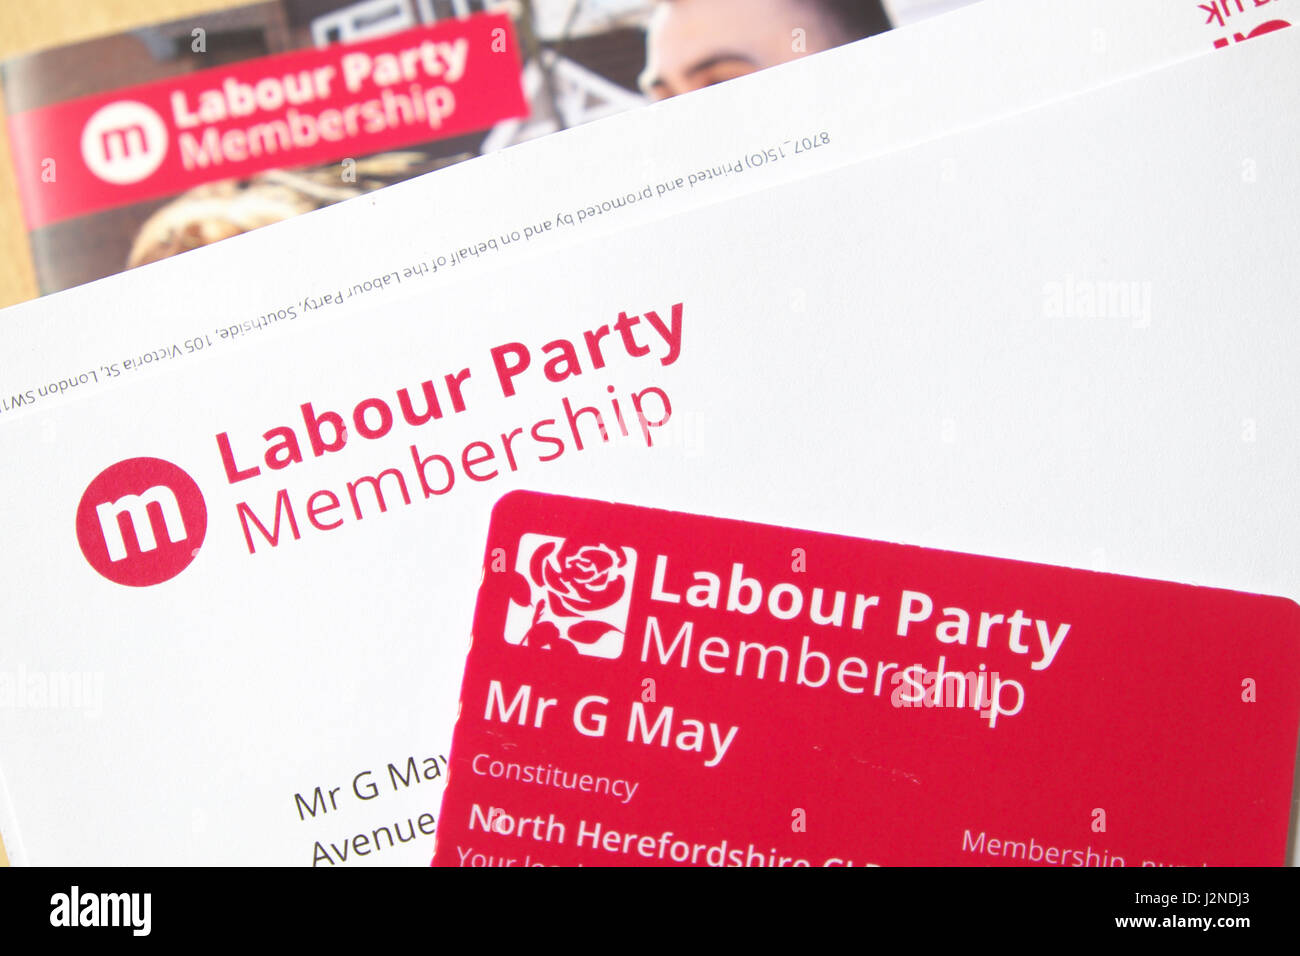 Labour Party membership card and welcome pack 2017 - Stock Image